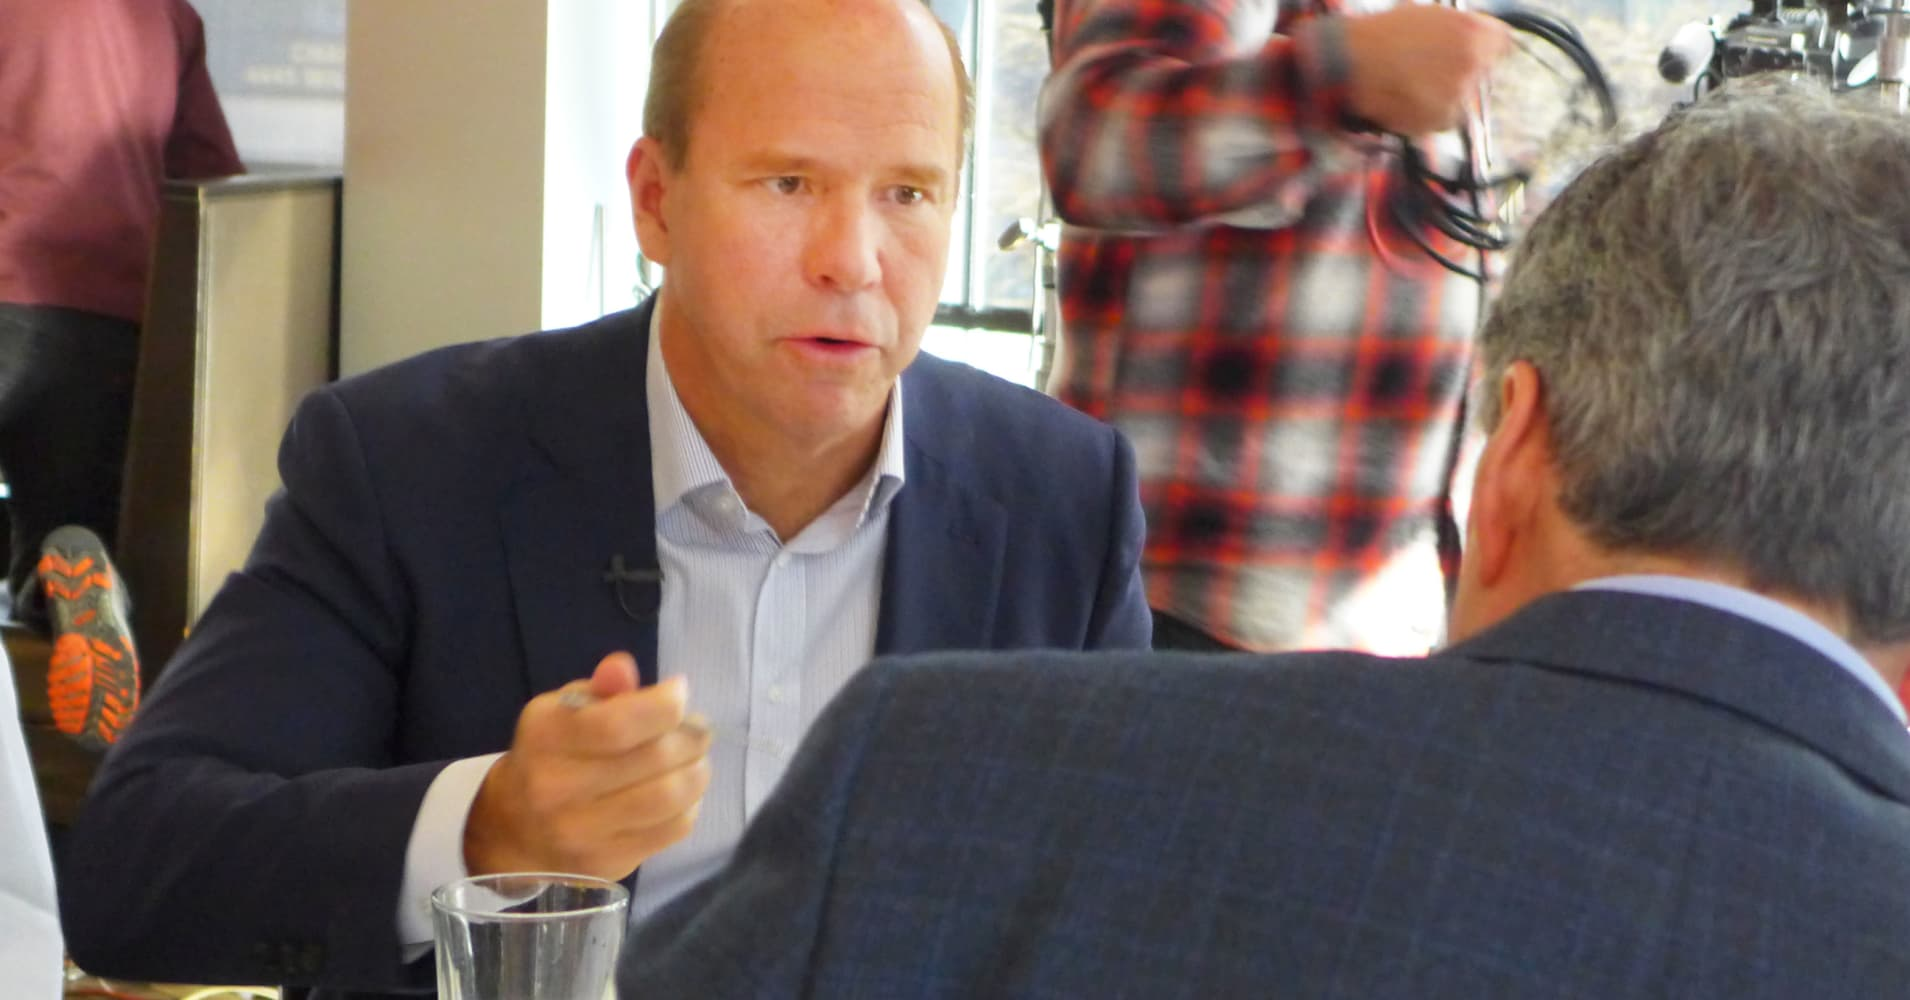 Presidential candidate John Delaney says every Americans should have health care 'as a right'